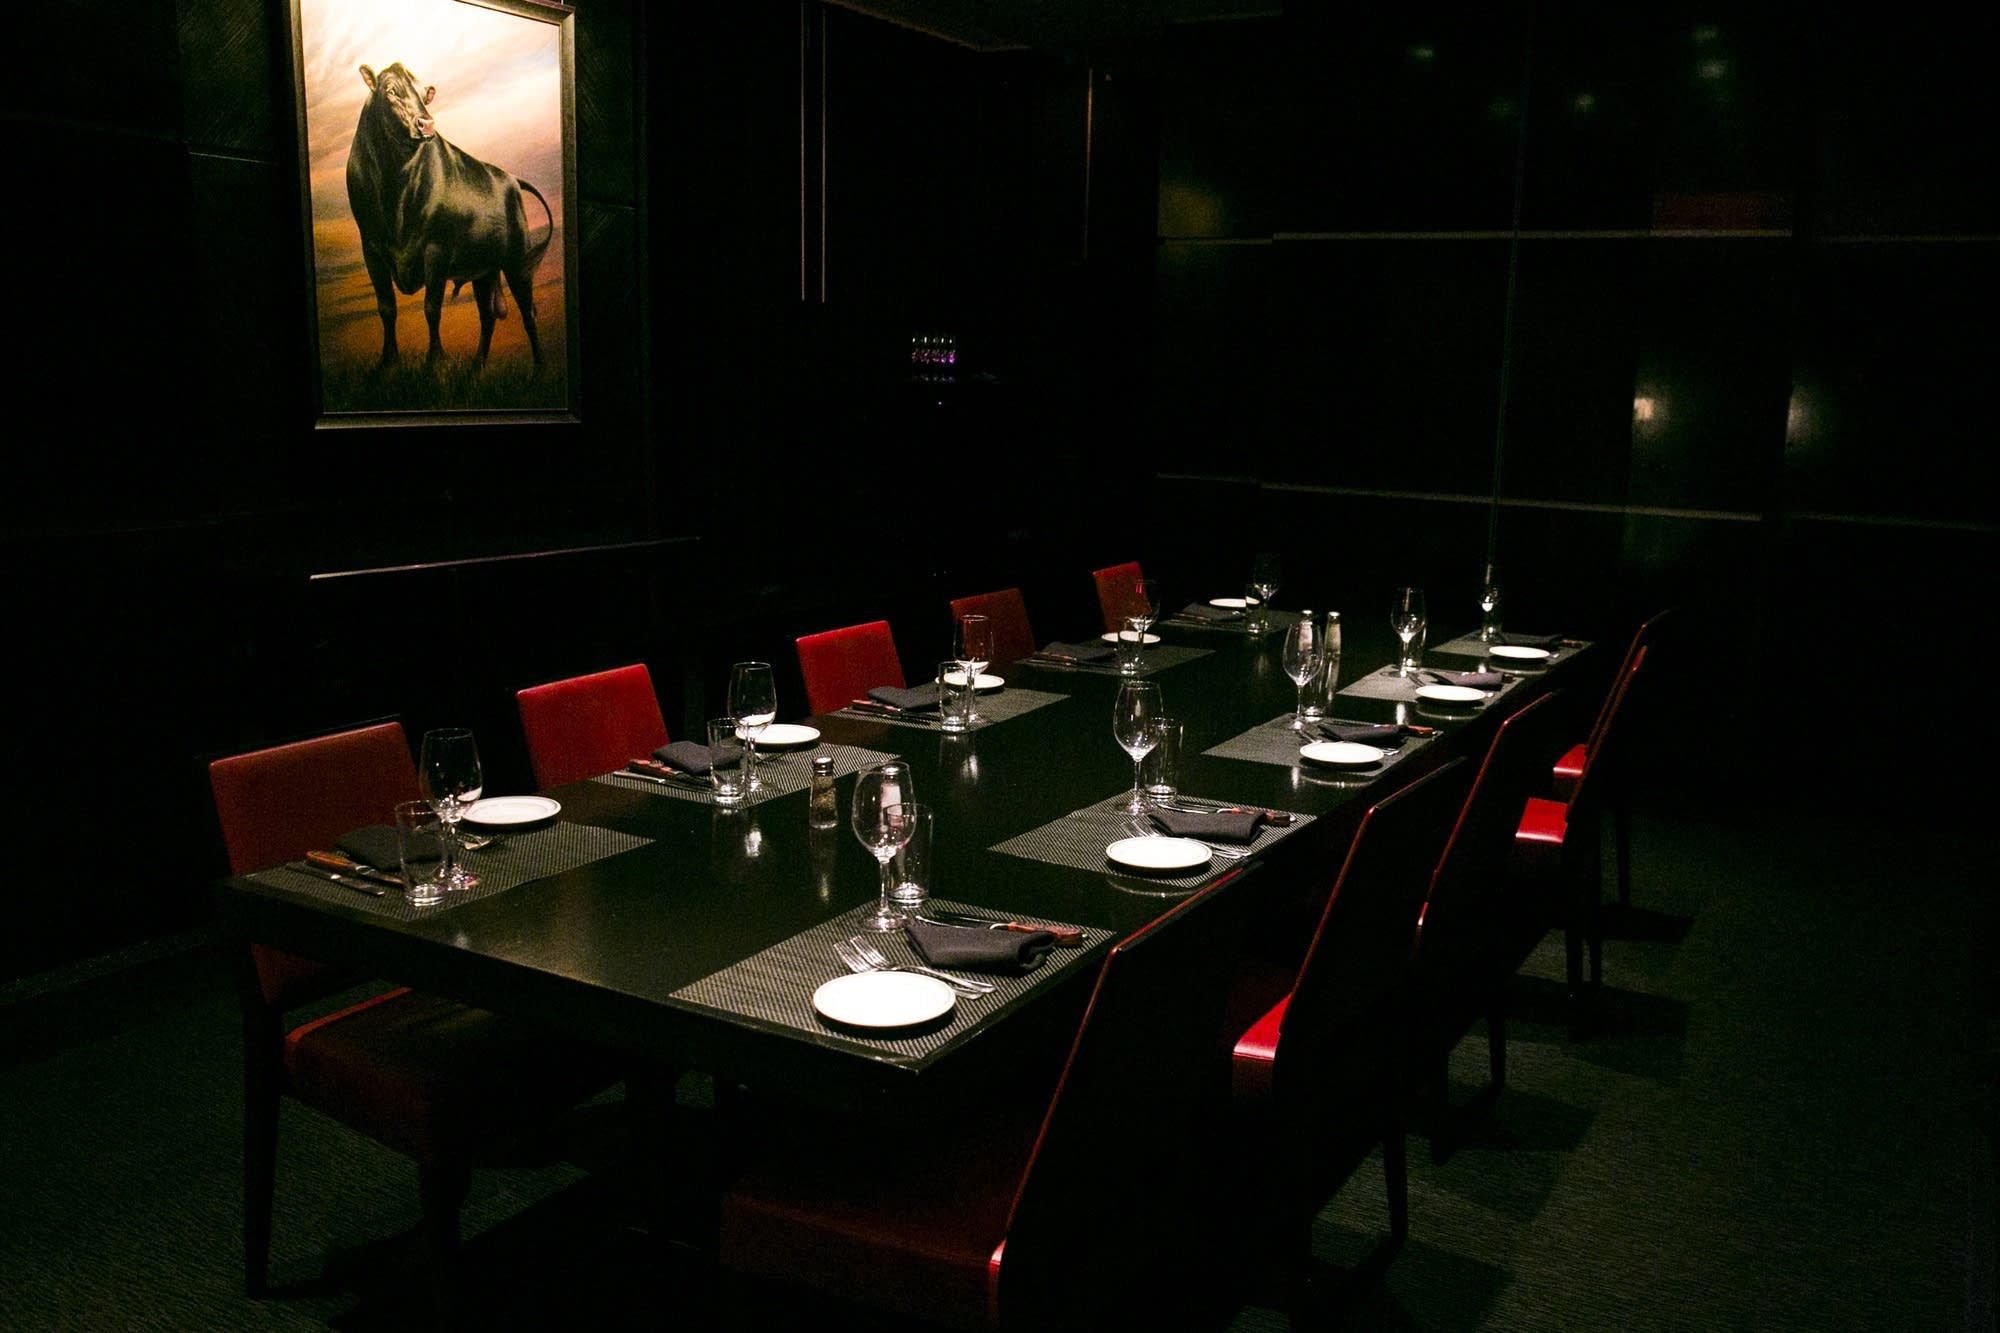 A private dining room is ready for an event at Manny's Steakhouse